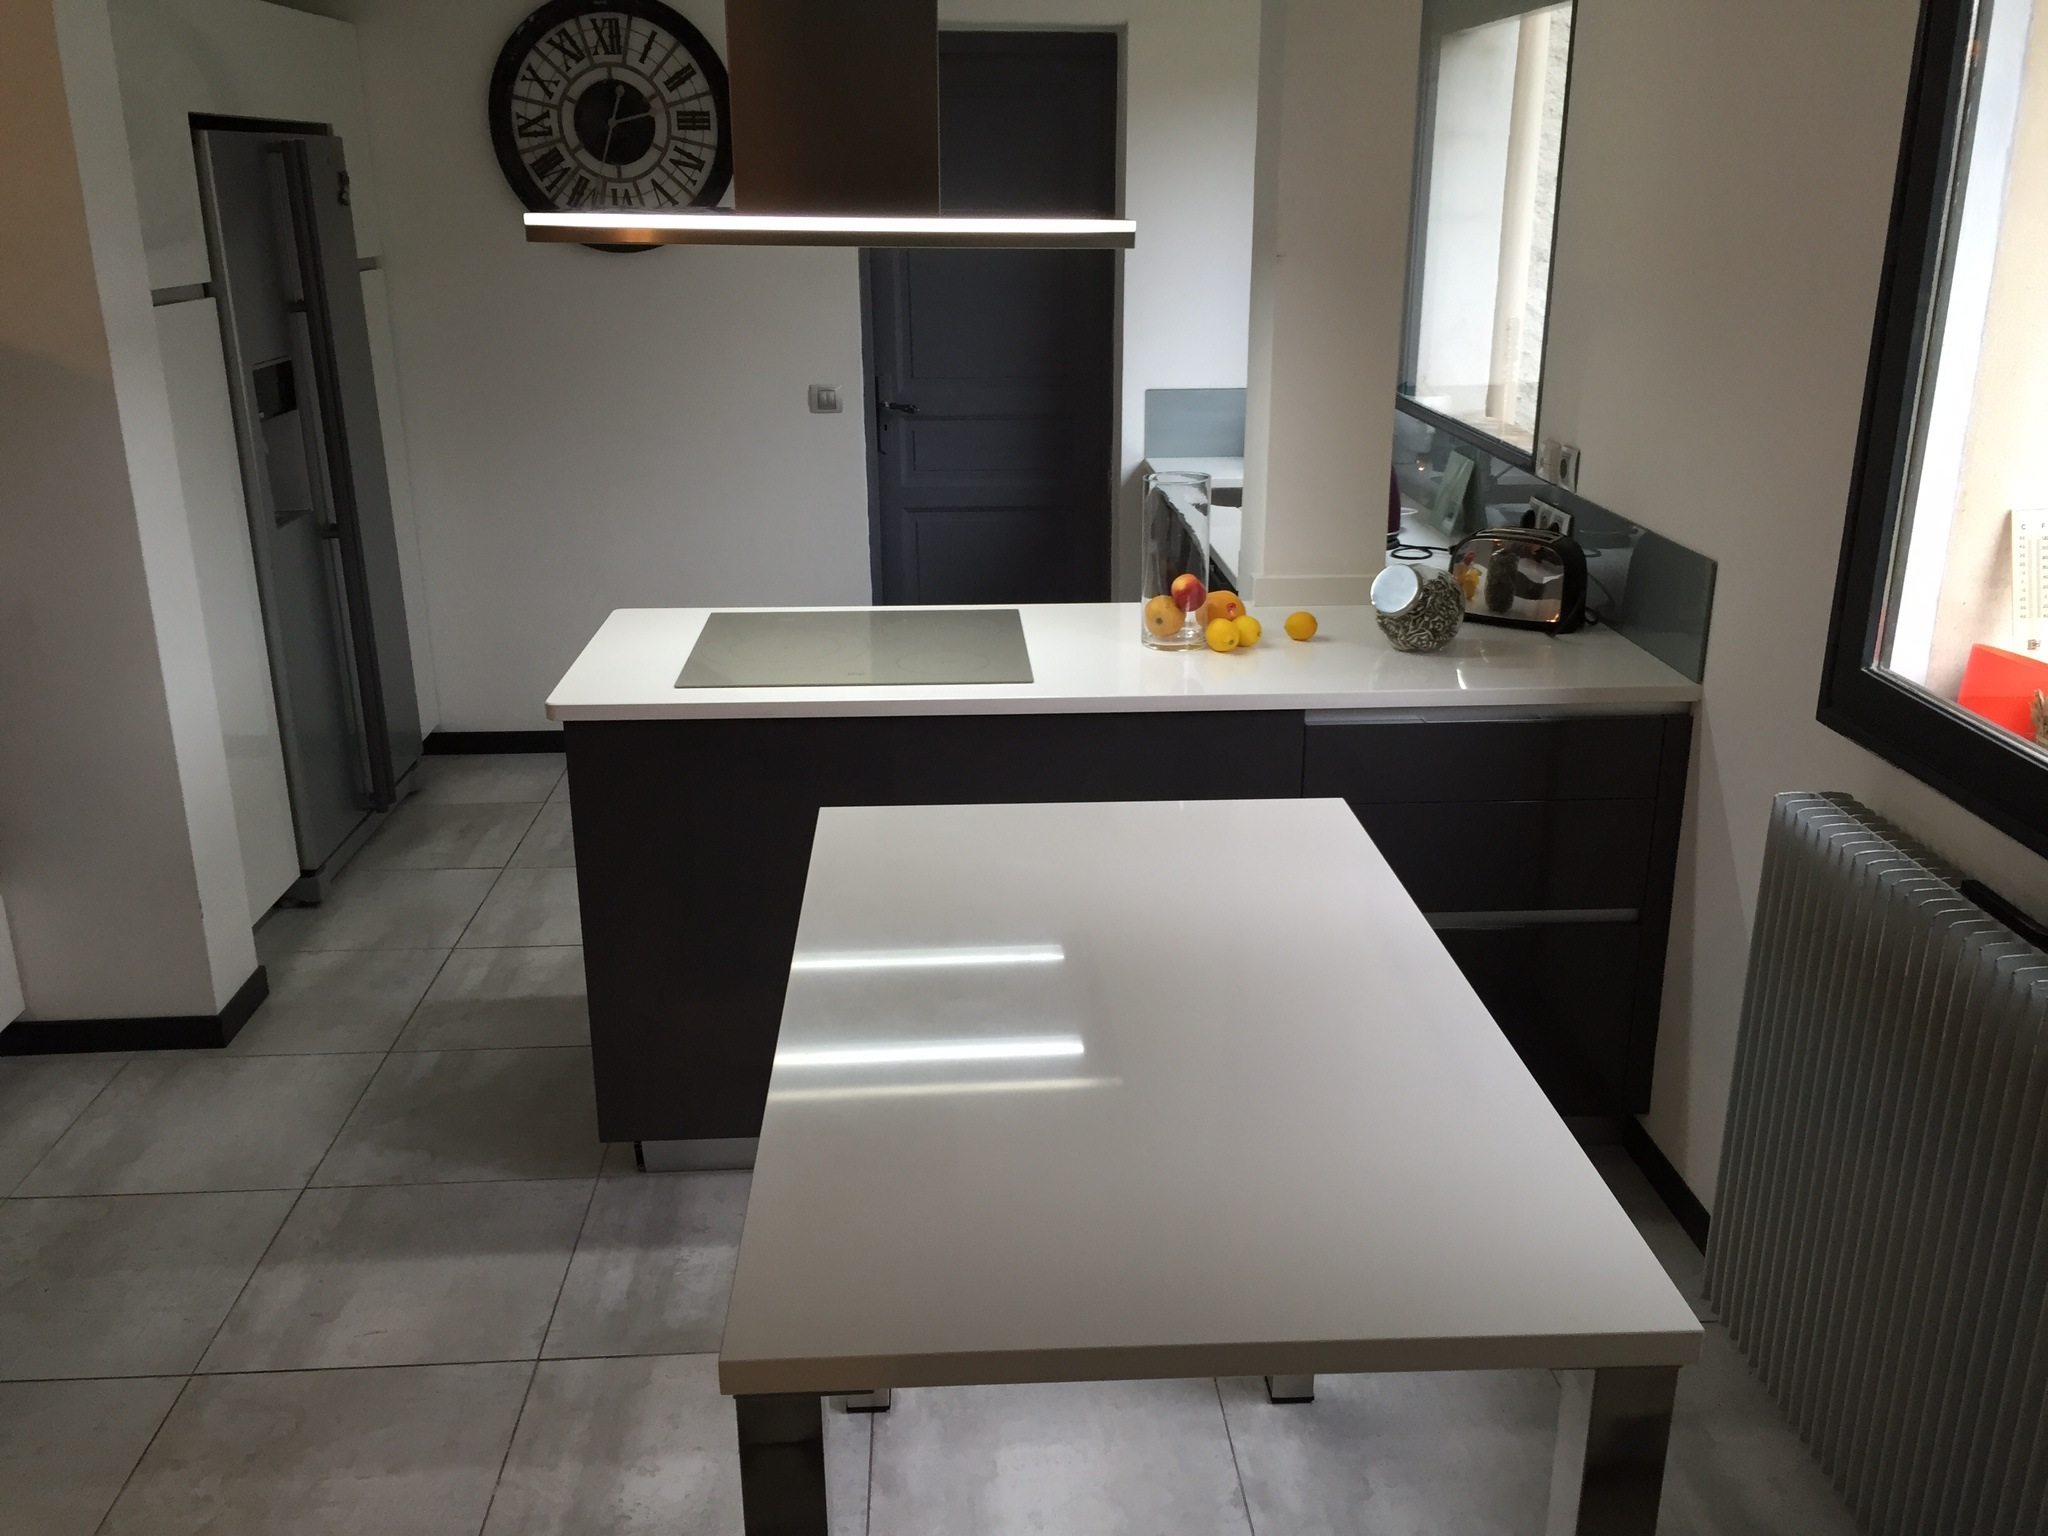 Plan de travail granit quartz table en mabre paris for Plan table de cuisine